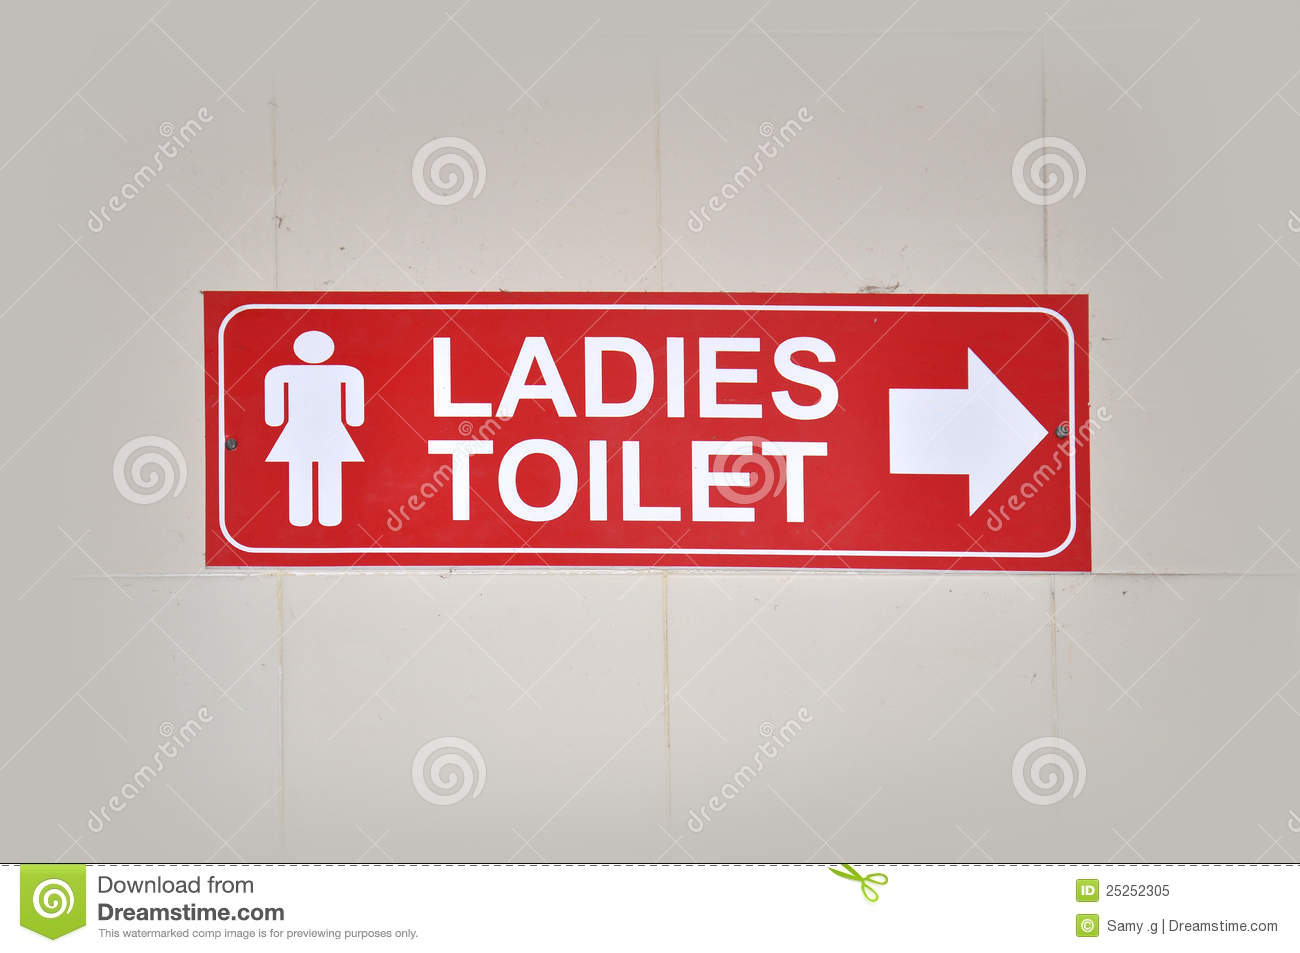 Ladies Toilet Royalty Free Stock Photo